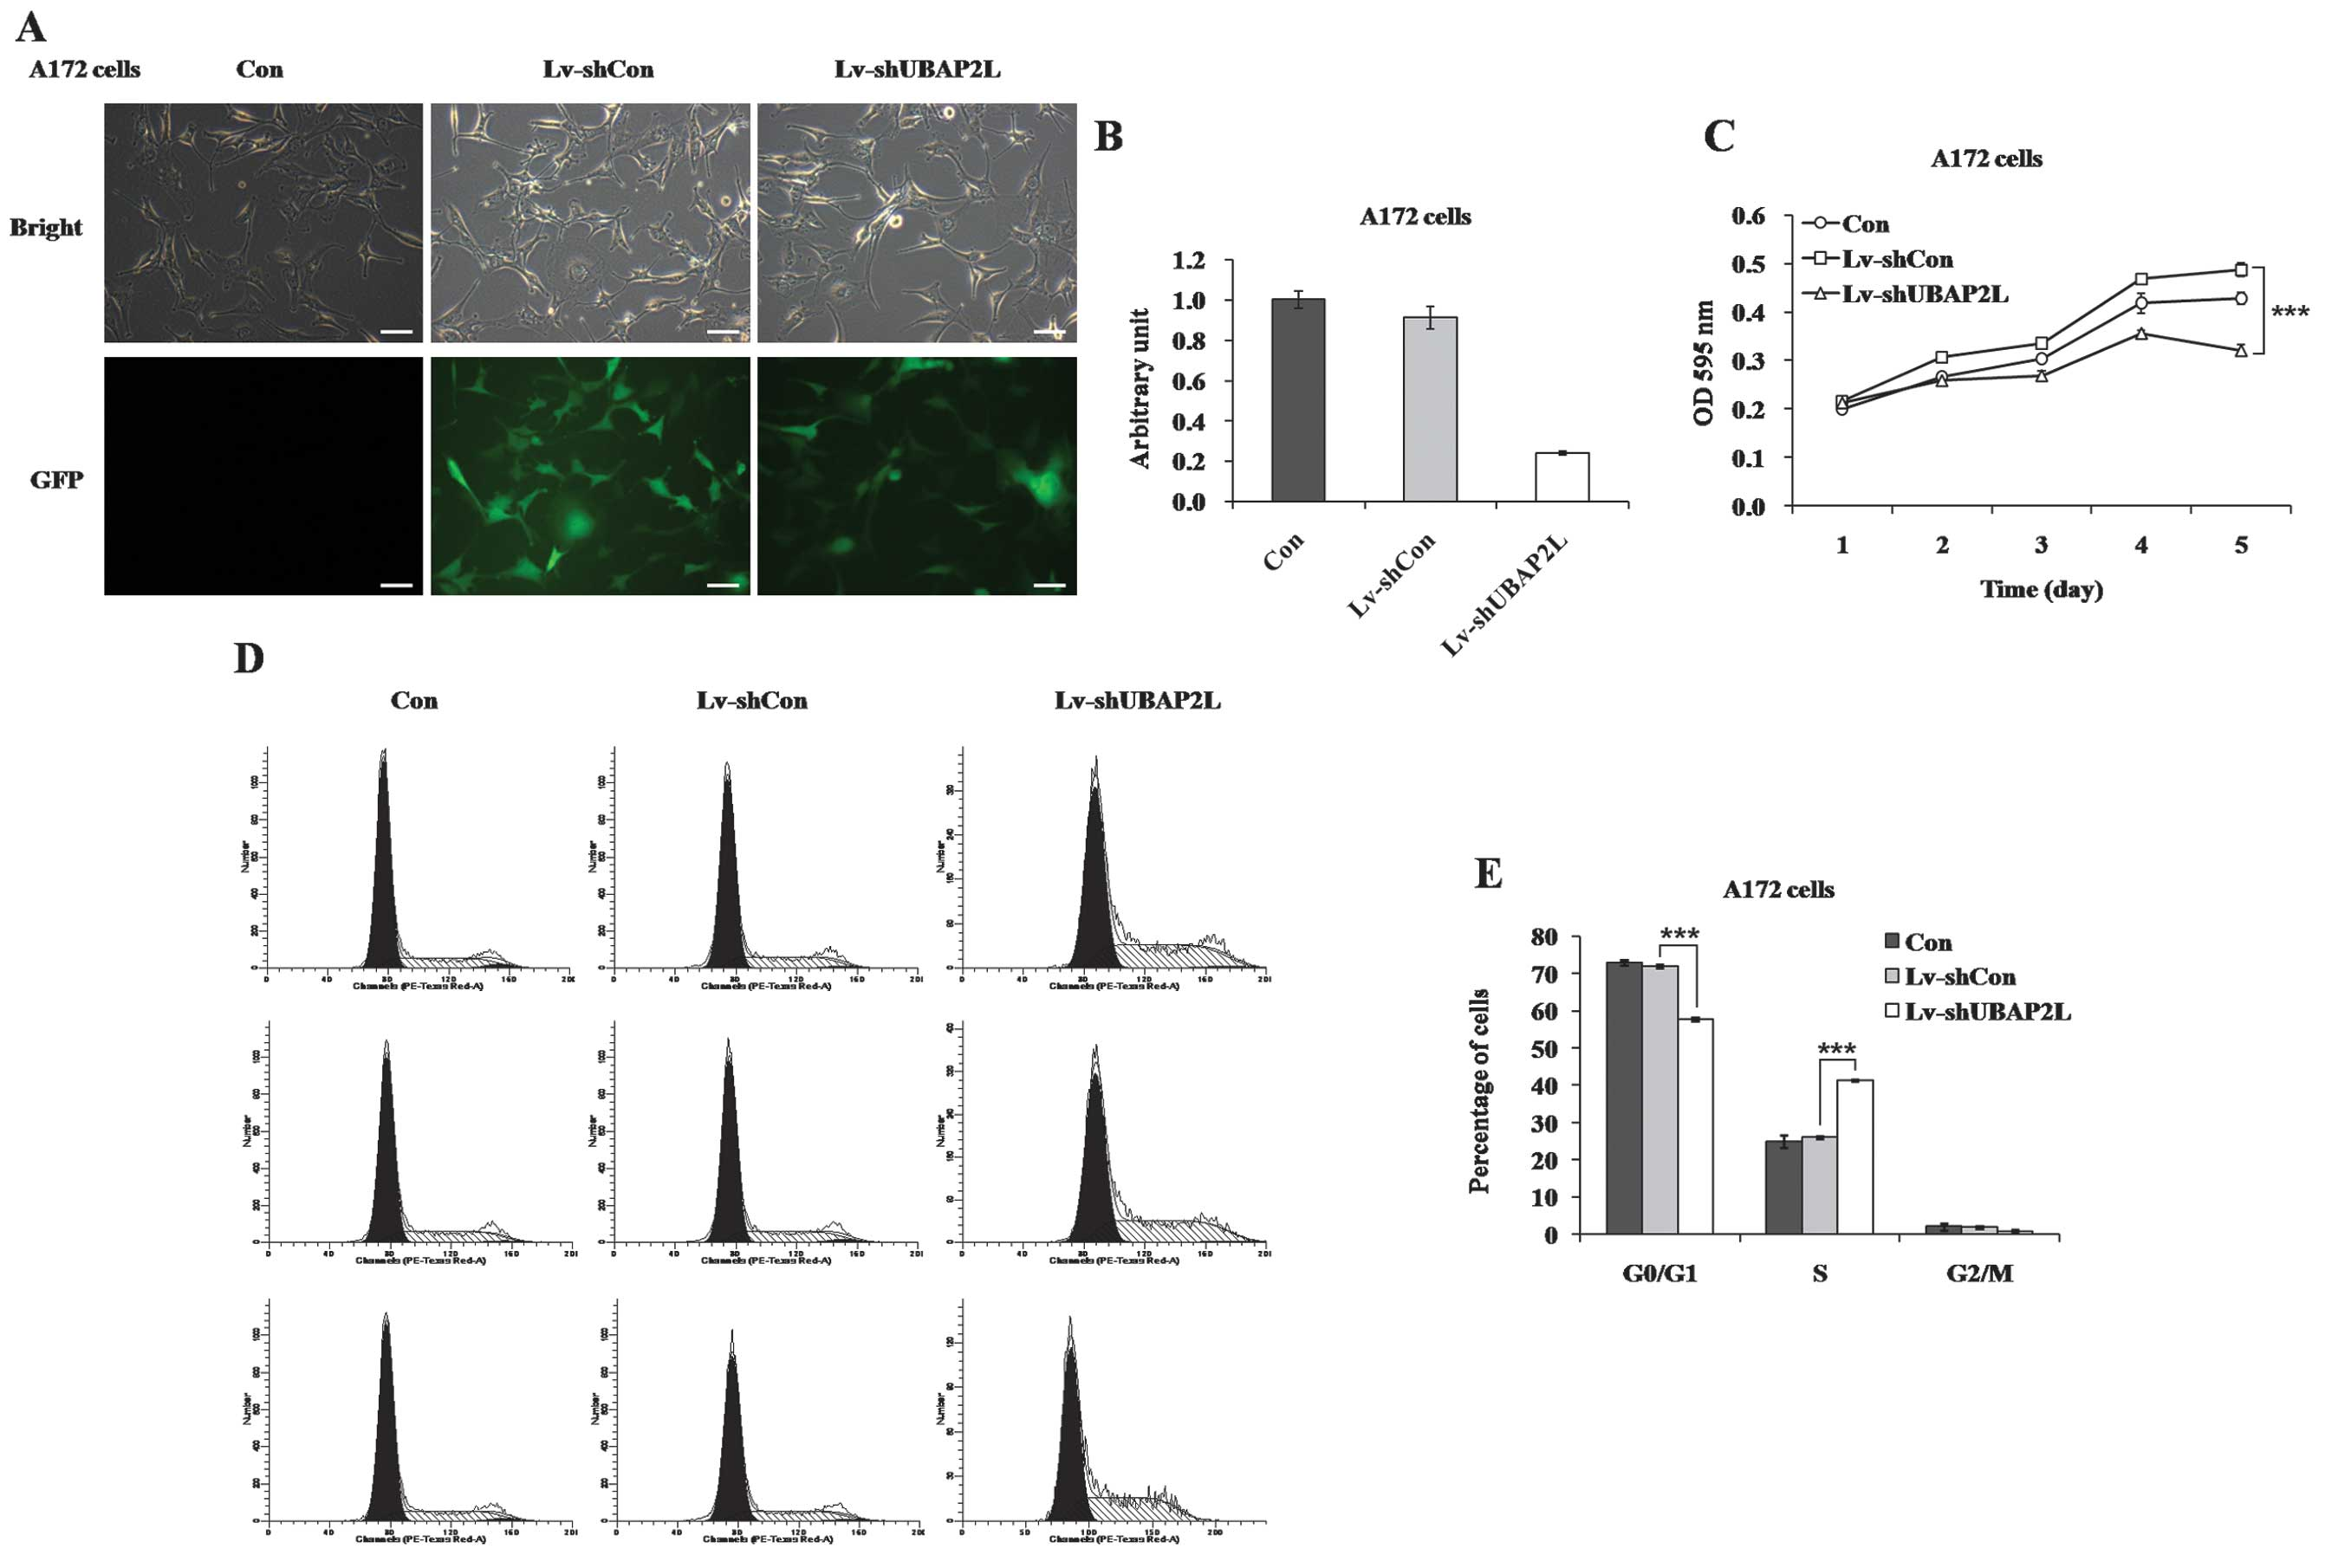 downregulation of ubiquitin associated protein 2 like with a short RNA Structure Worksheet function analysis of ubiquitin associated protein 2 like ubap2l by short hairpin rna shrna in a172 cells a representative images of a172 cells after